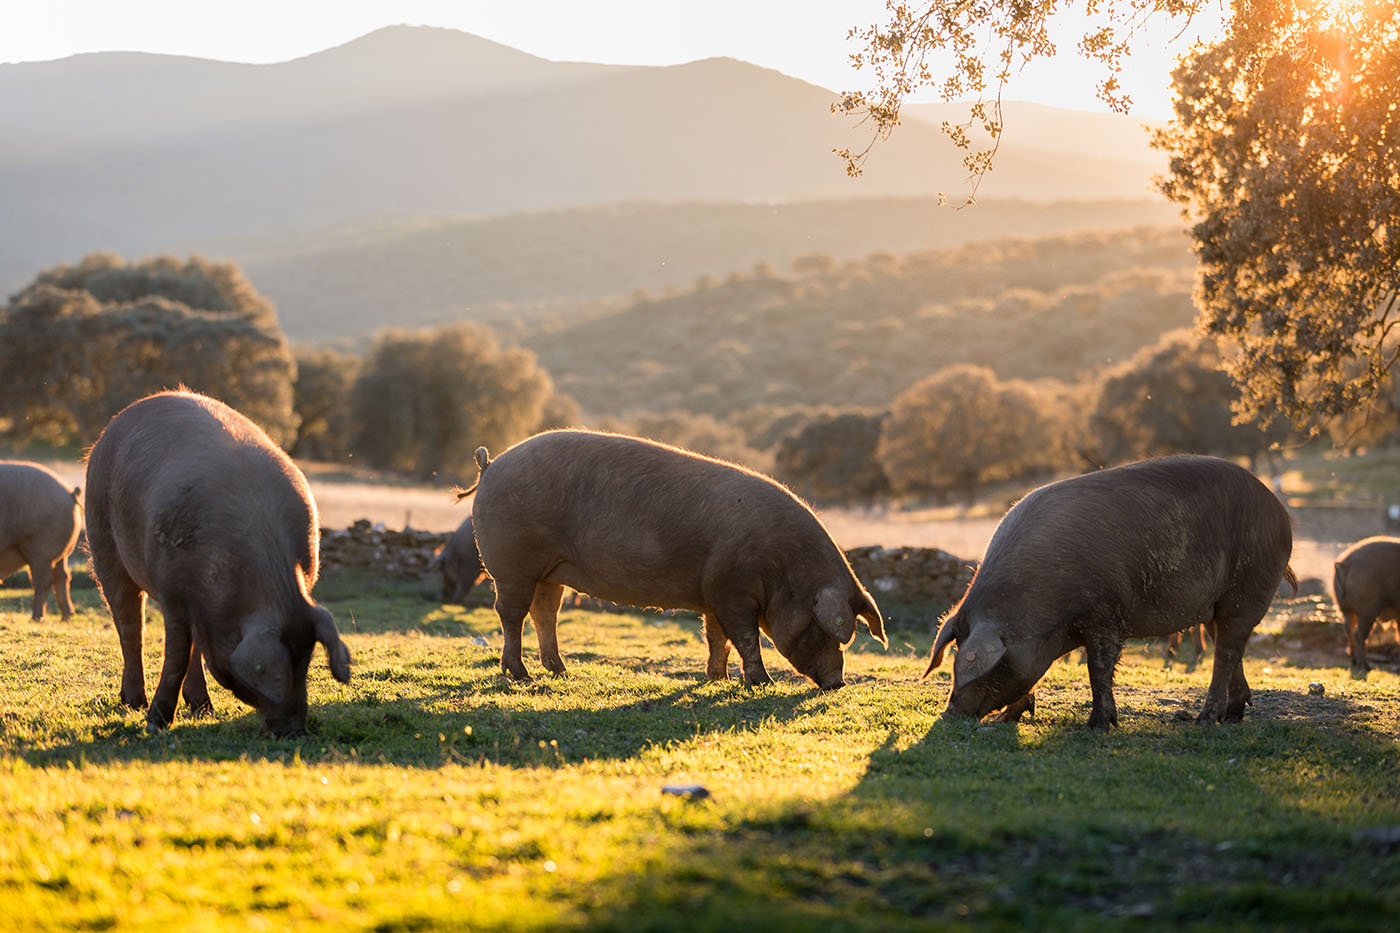 Wild pigs would naturally eat grass and what lives underneath it, including grubs, insects and their larvae. Insect oil is rich in lauric acid, a fatty acid that helps improve the intestinal health of animals, especially piglets.